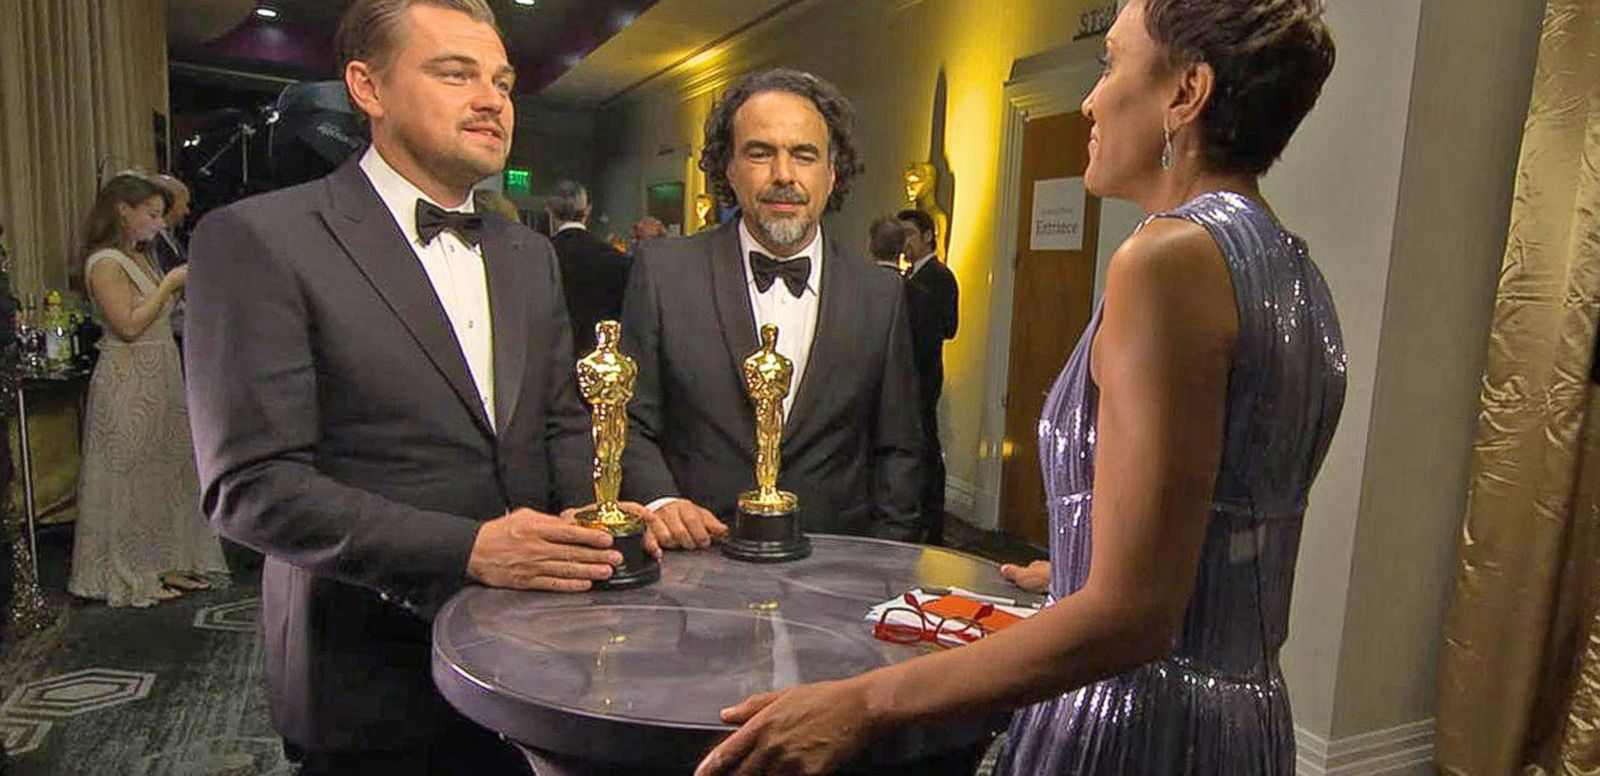 VIDEO: 2016 Oscars: Leonardo DiCaprio and More Stars Dish on Oscar Wins